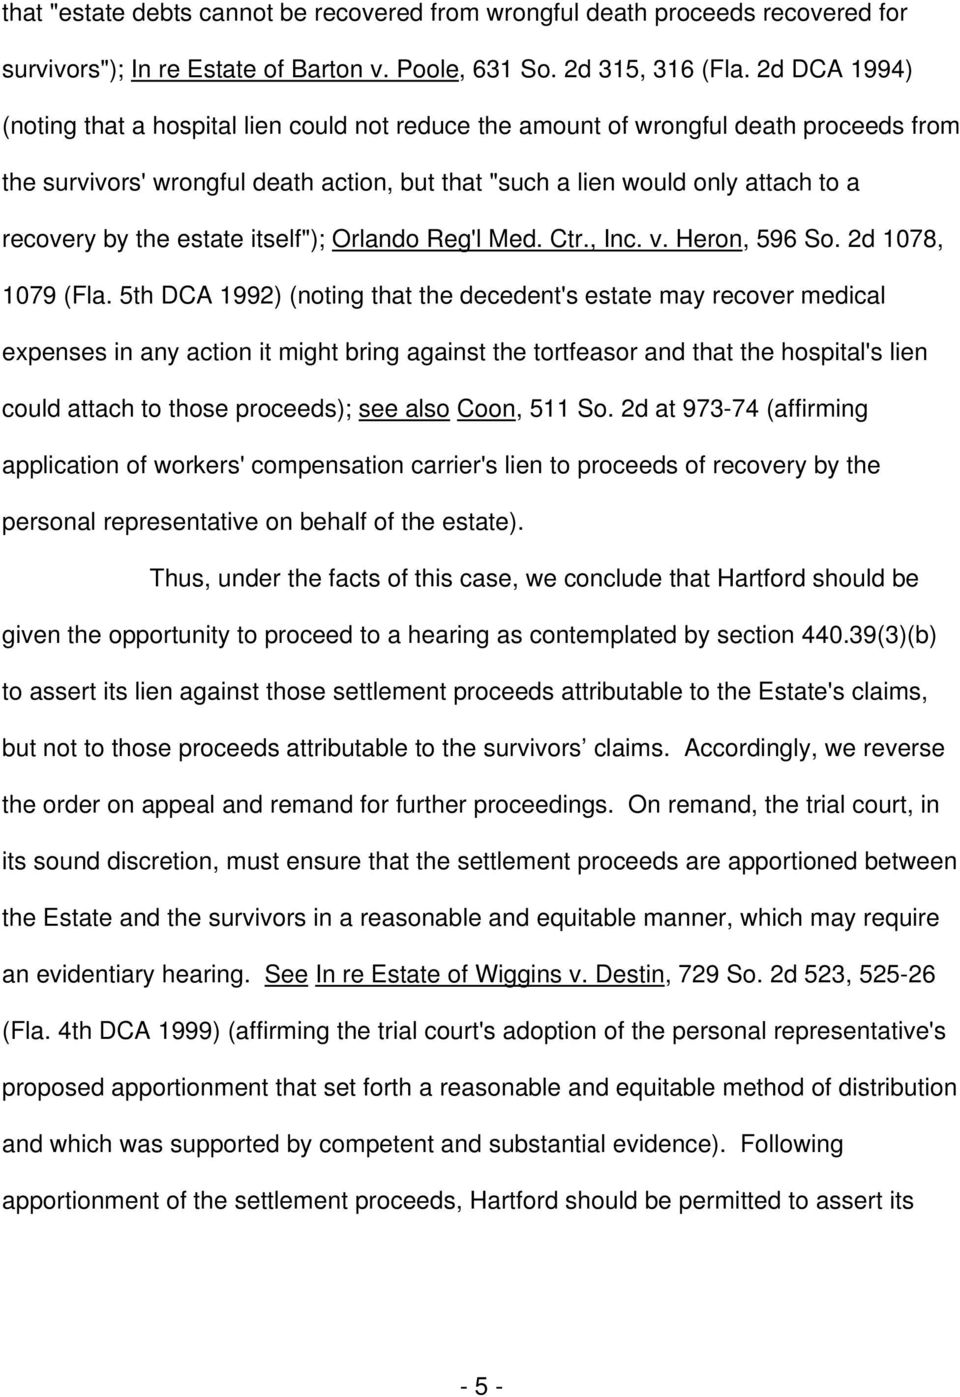 "estate itself""; Orlando Reg'l Med. Ctr., Inc. v. Heron, 596 So. 2d 1078, 1079 (Fla."